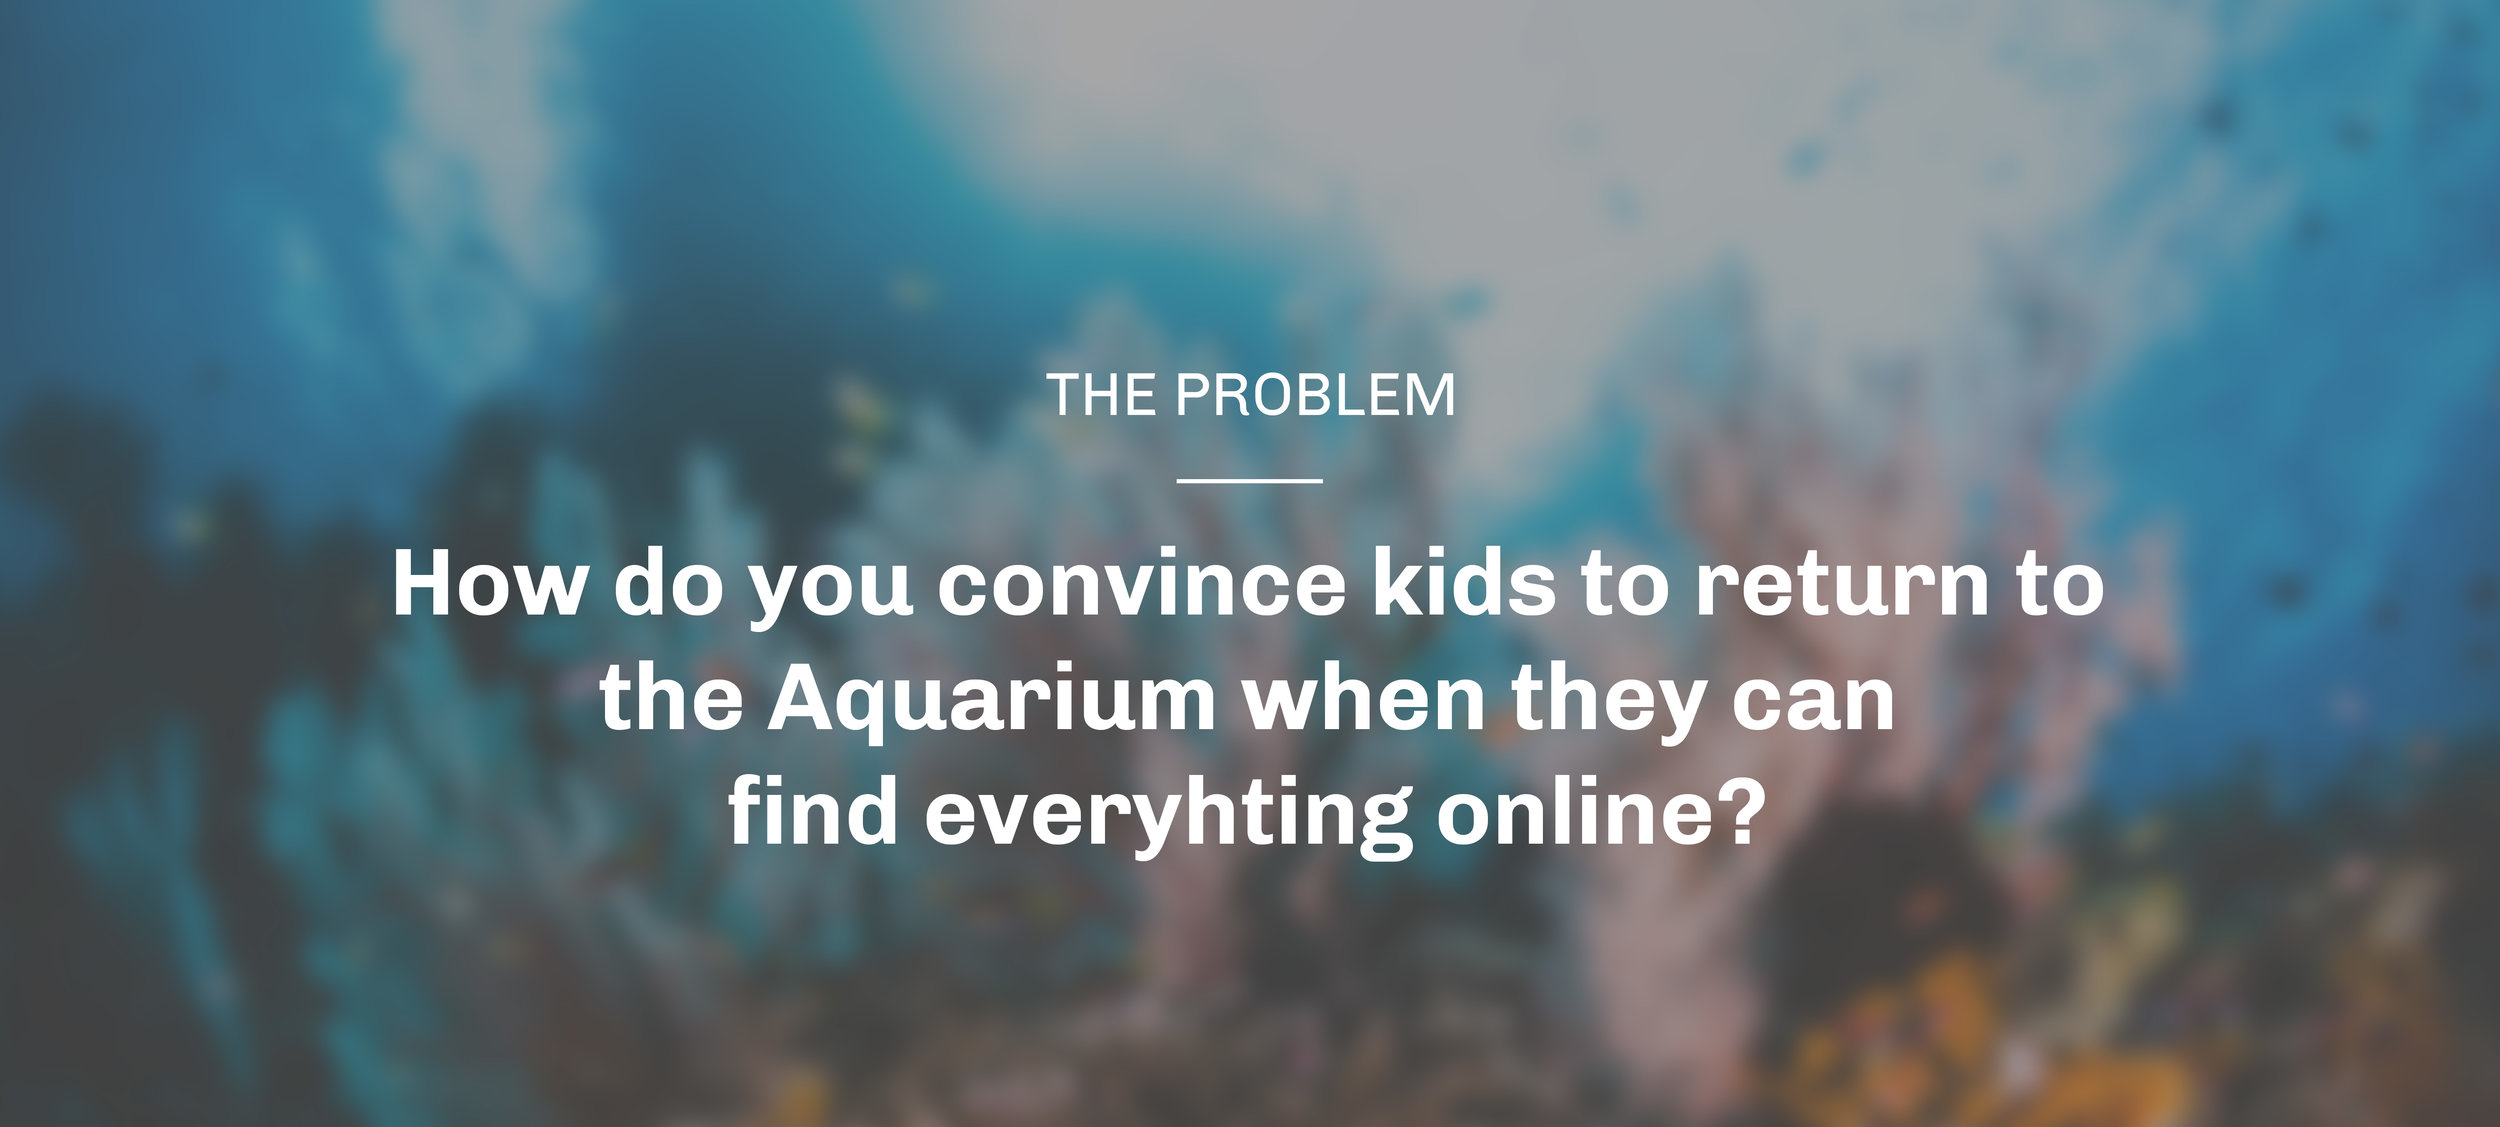 aquarium_question_top.jpg